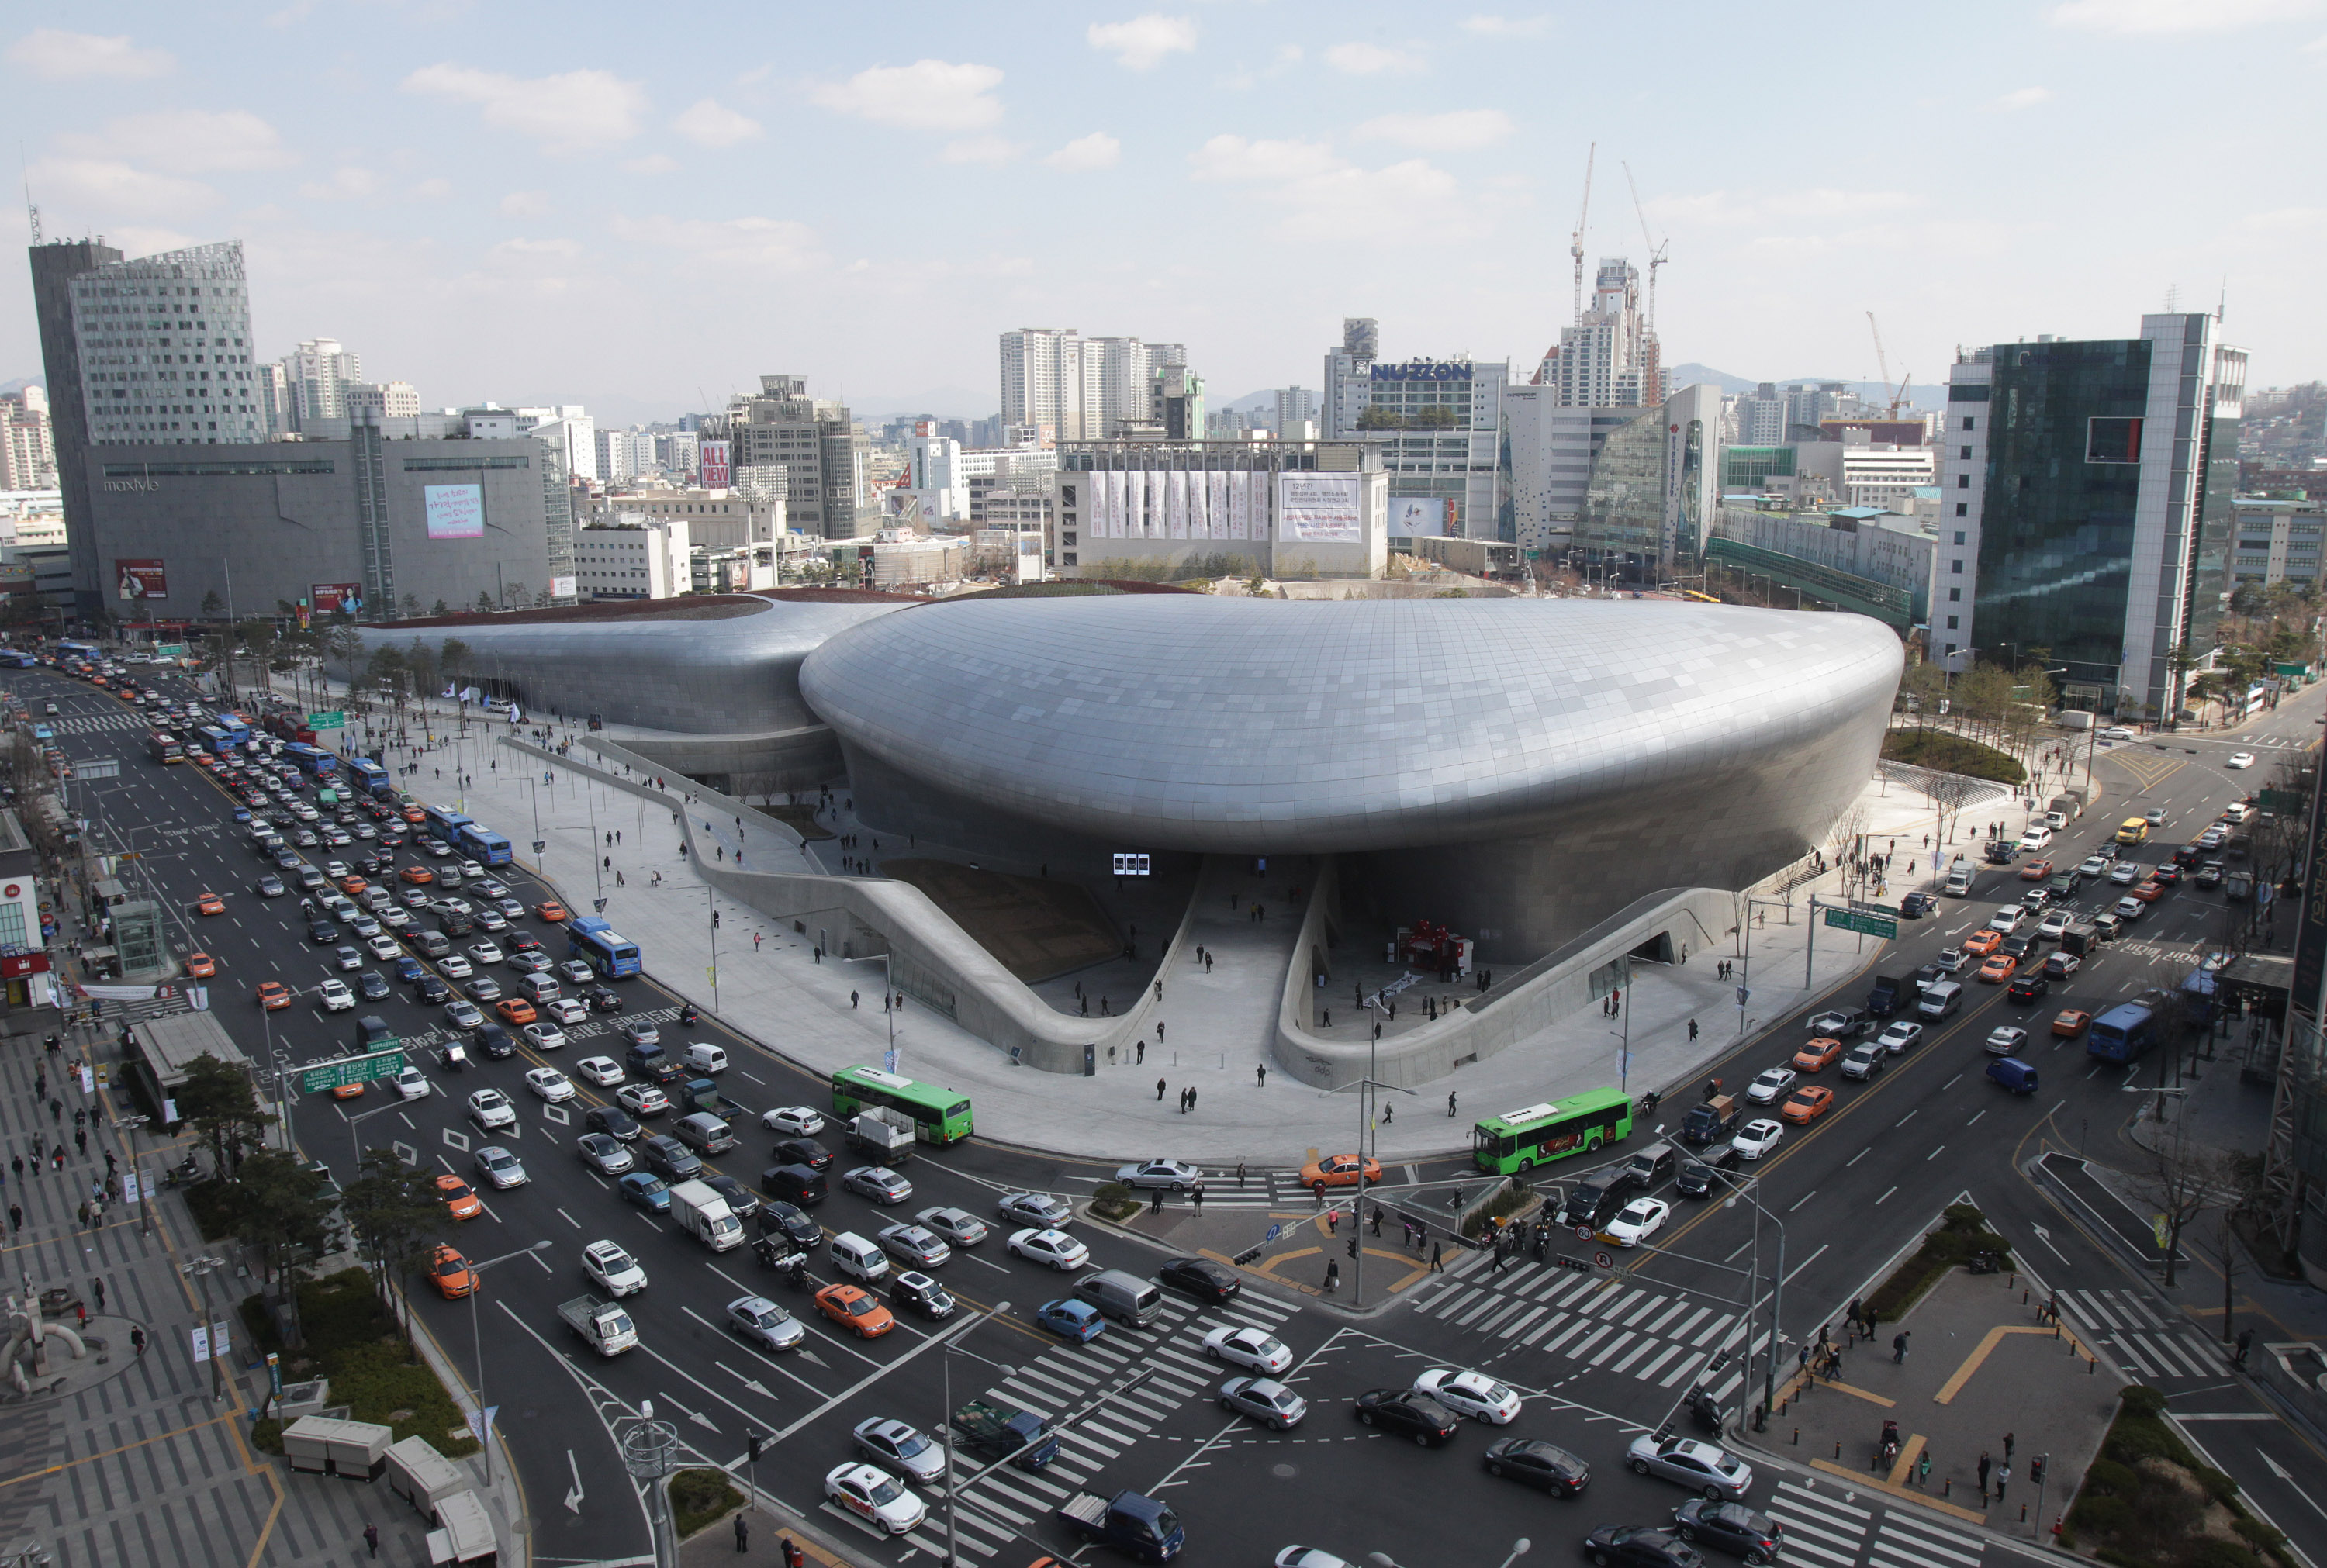 dongdaemun design plaza is seen in downtown seoul on